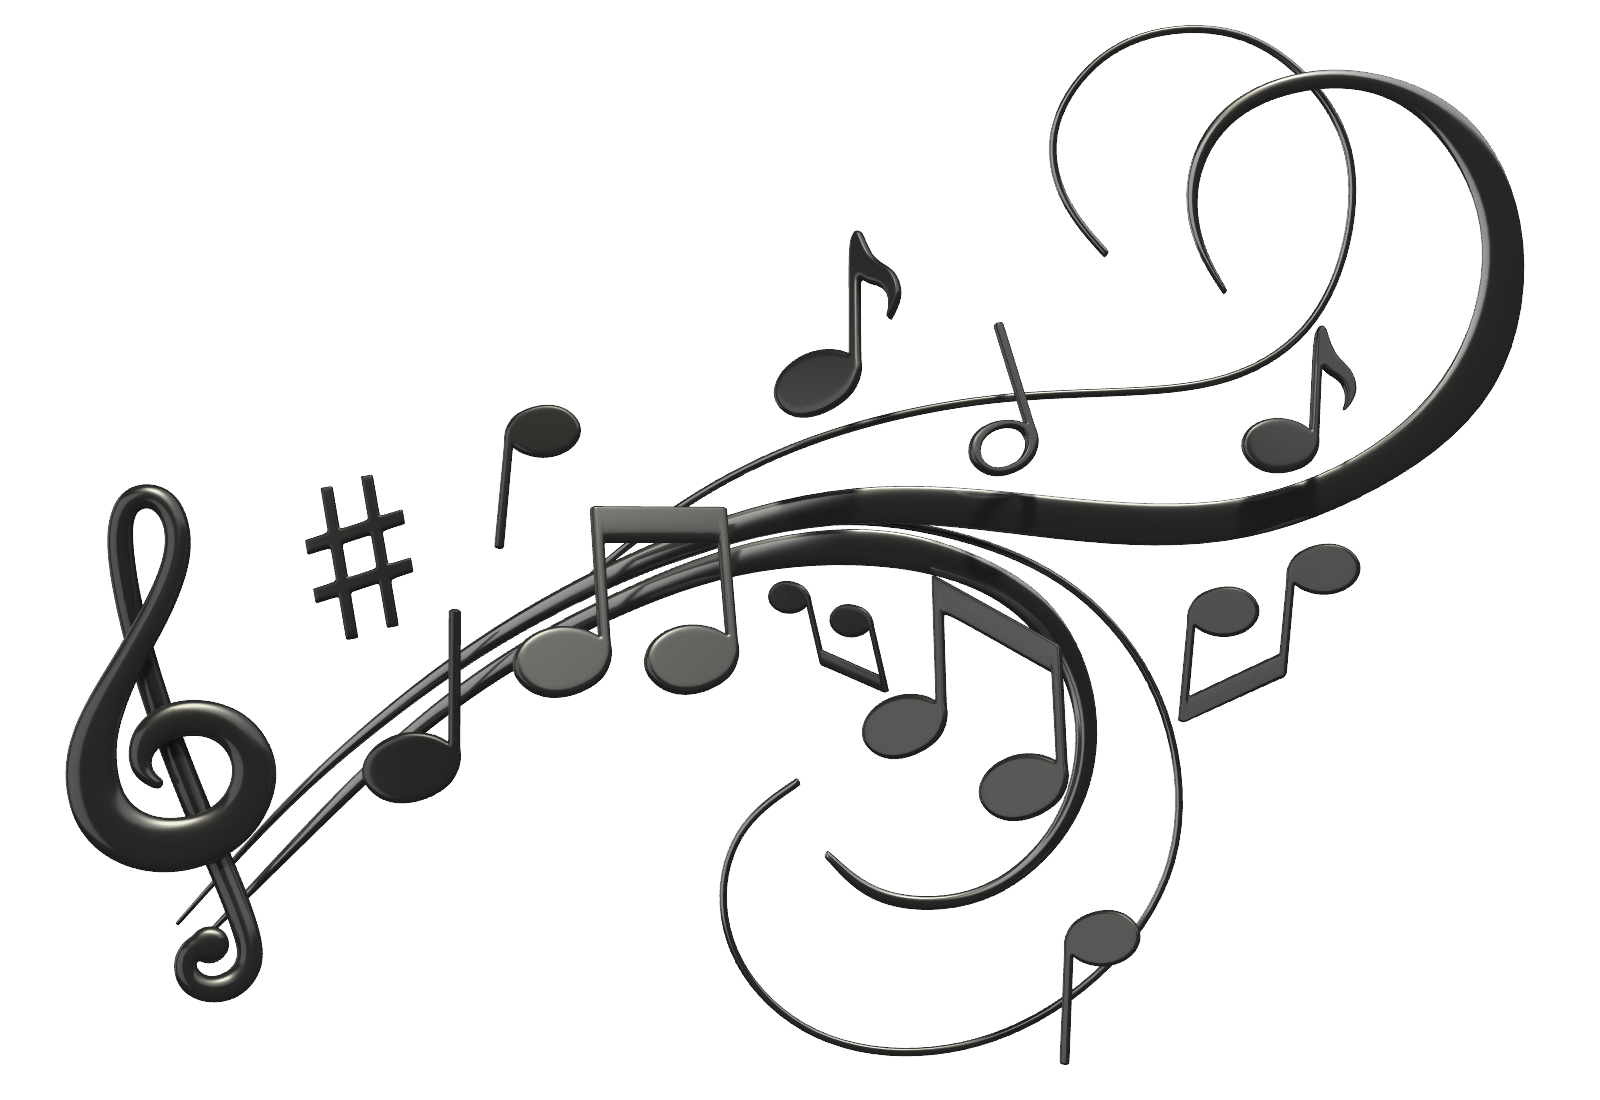 1600x1100 Music Notes Png Images Free Download, Note Clef Png